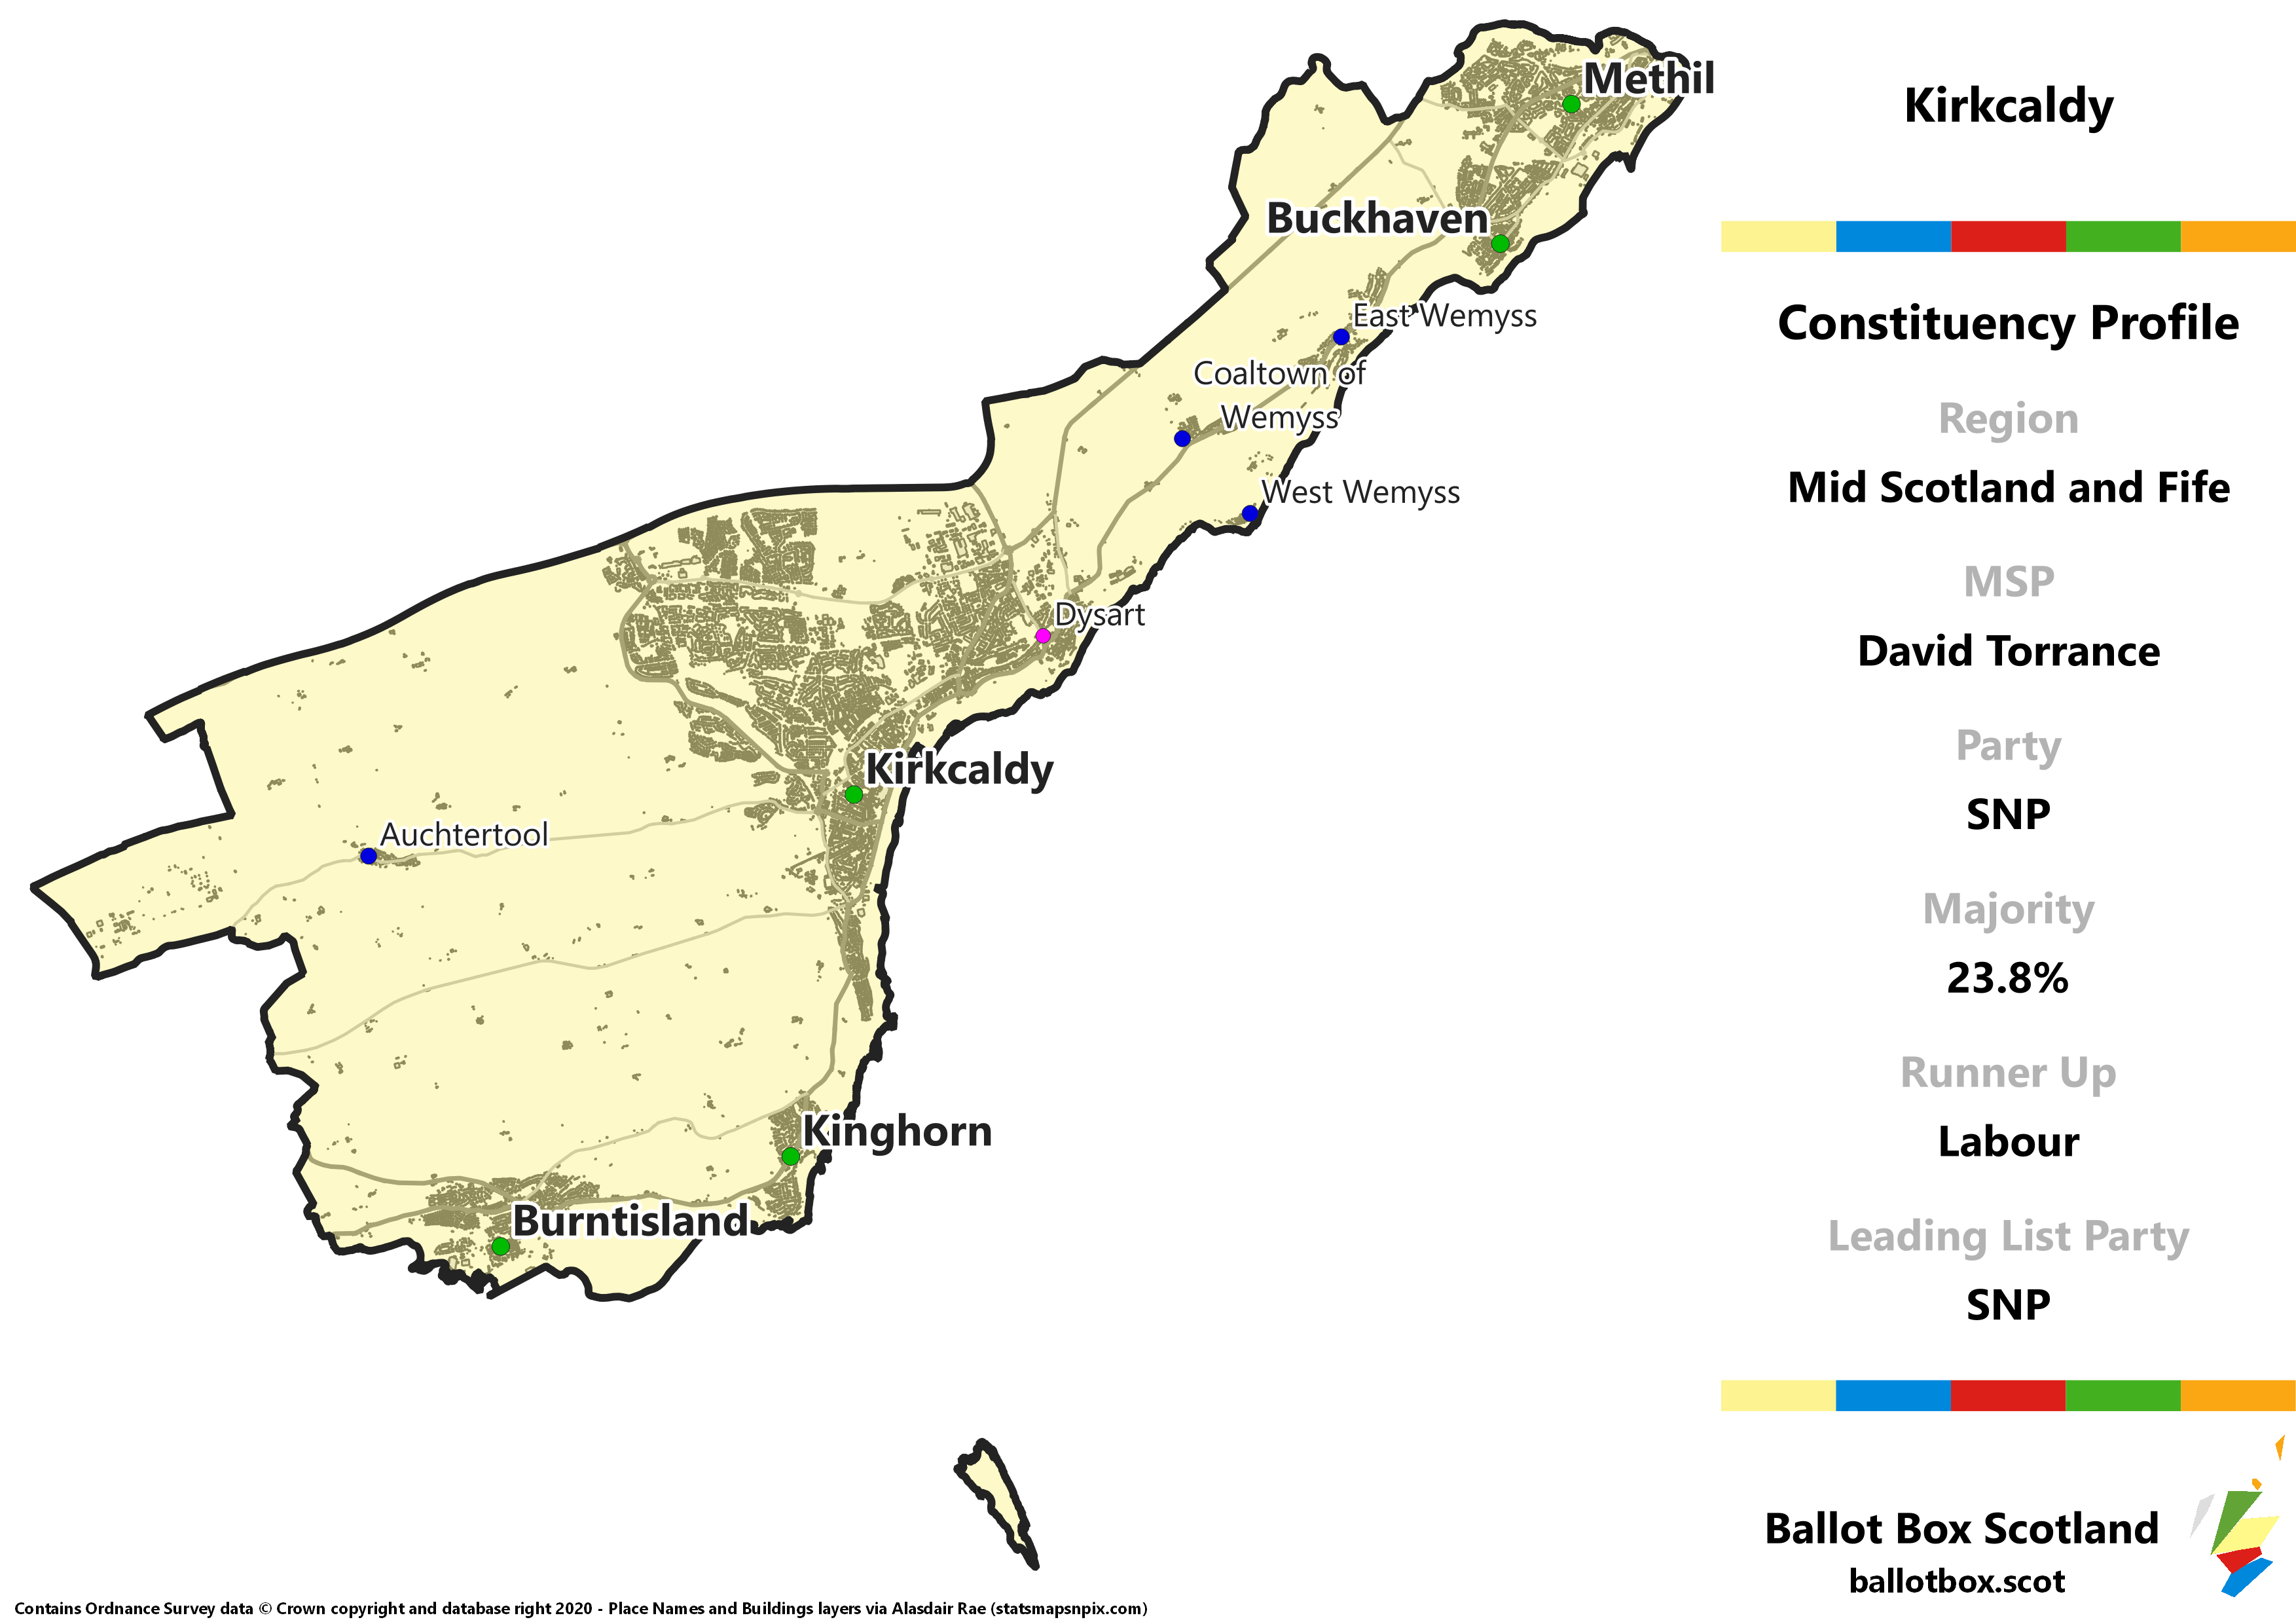 Mid Scotland and Fife Region – Kirkcaldy Constituency Map